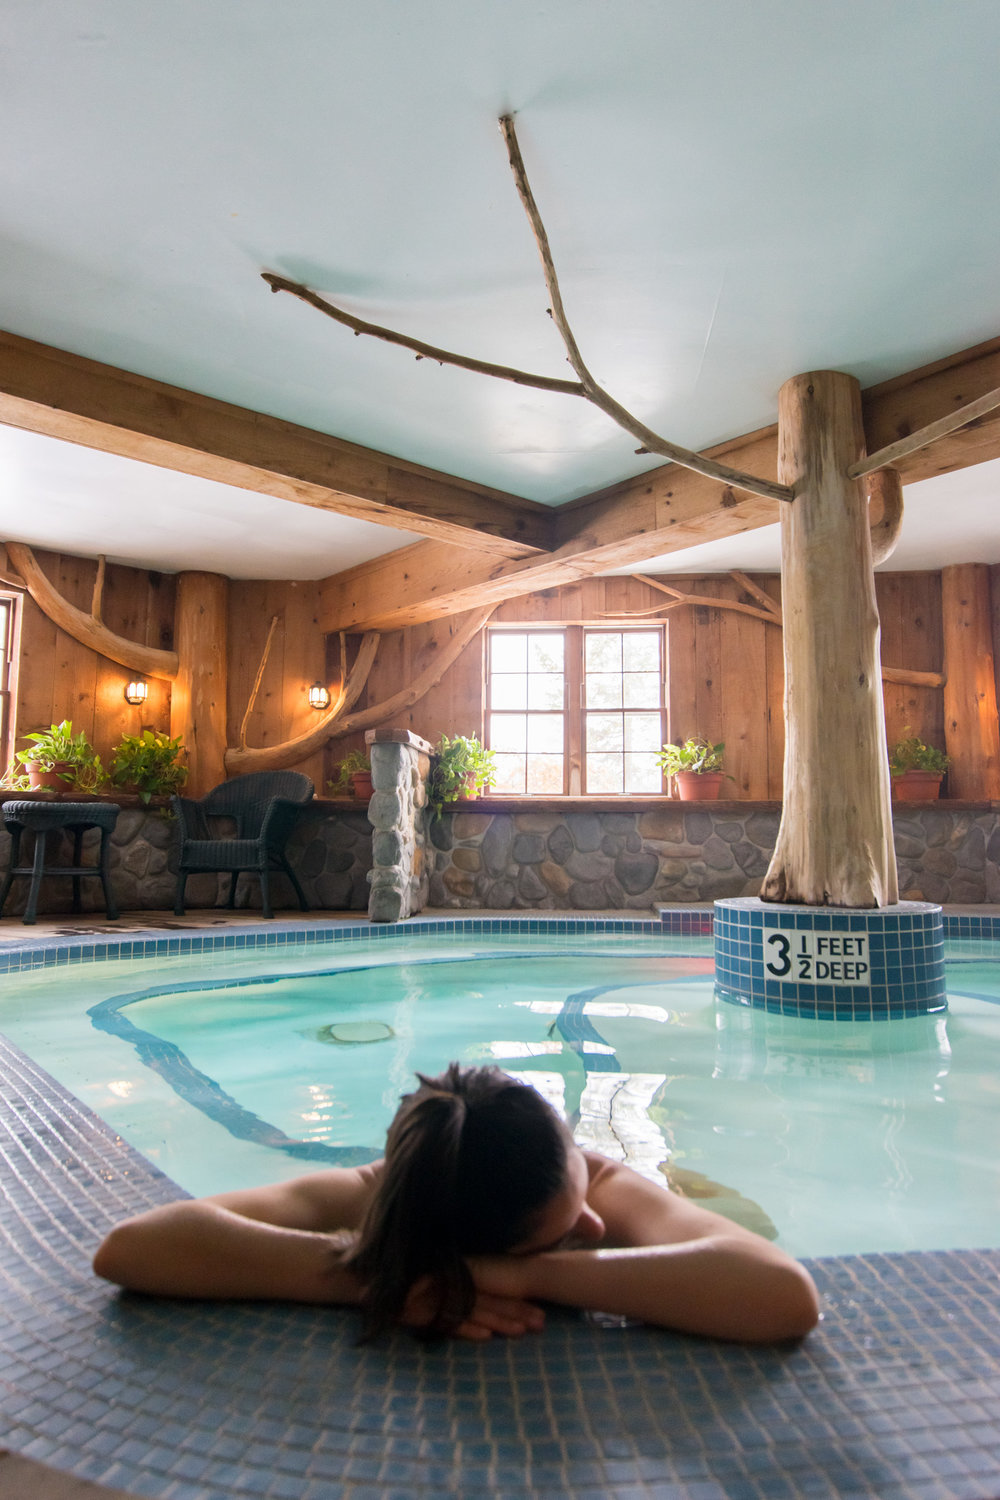 The indoor whirlpool at Mirror Lake Inn